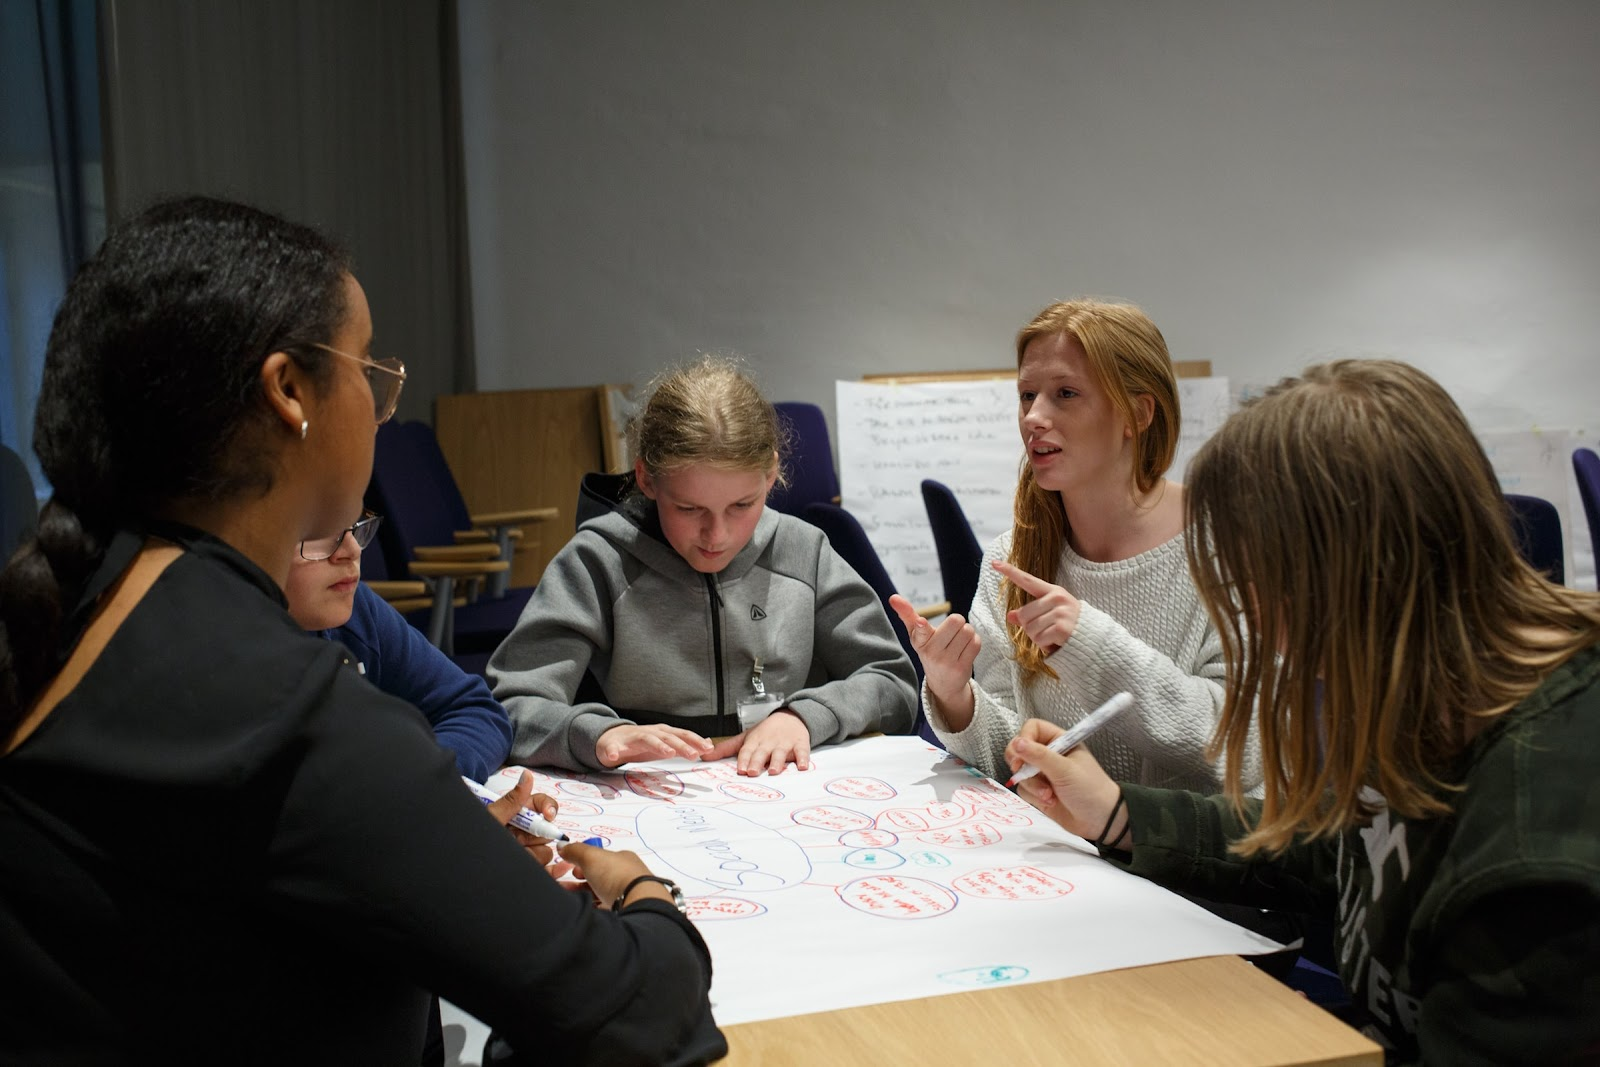 A group of five students is gathered around a table with a large white posterboard in between them. They are having a discussion while adding things to an idea map on the paper with colored markers.